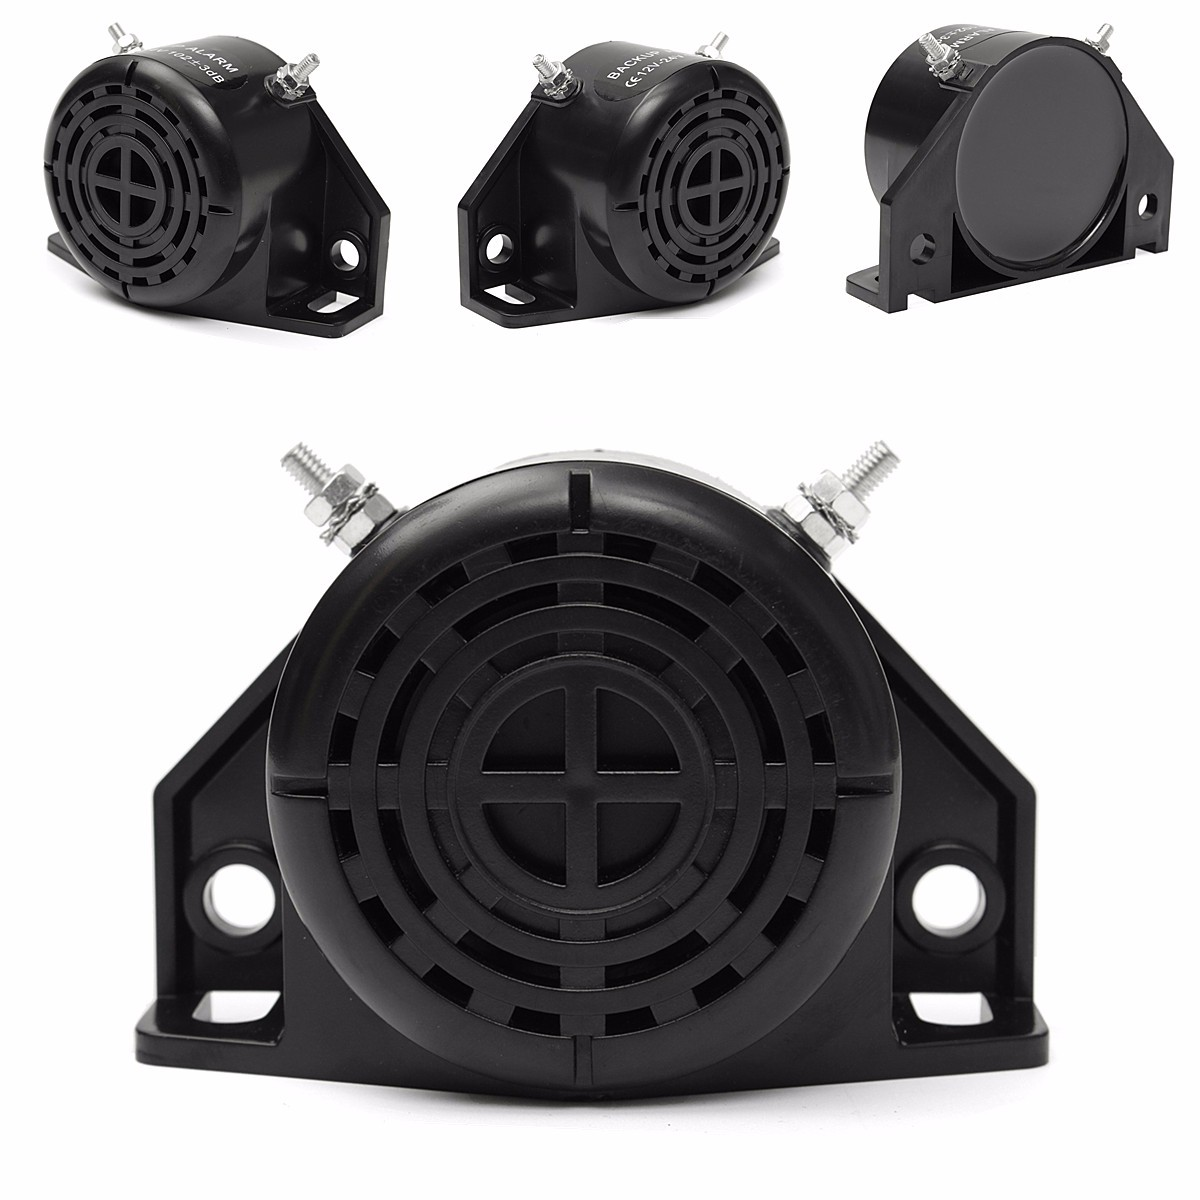 105DB Motorcycle Car Vehicle Reversing Horn Speakers Back-up Alarm System Buzzer Black